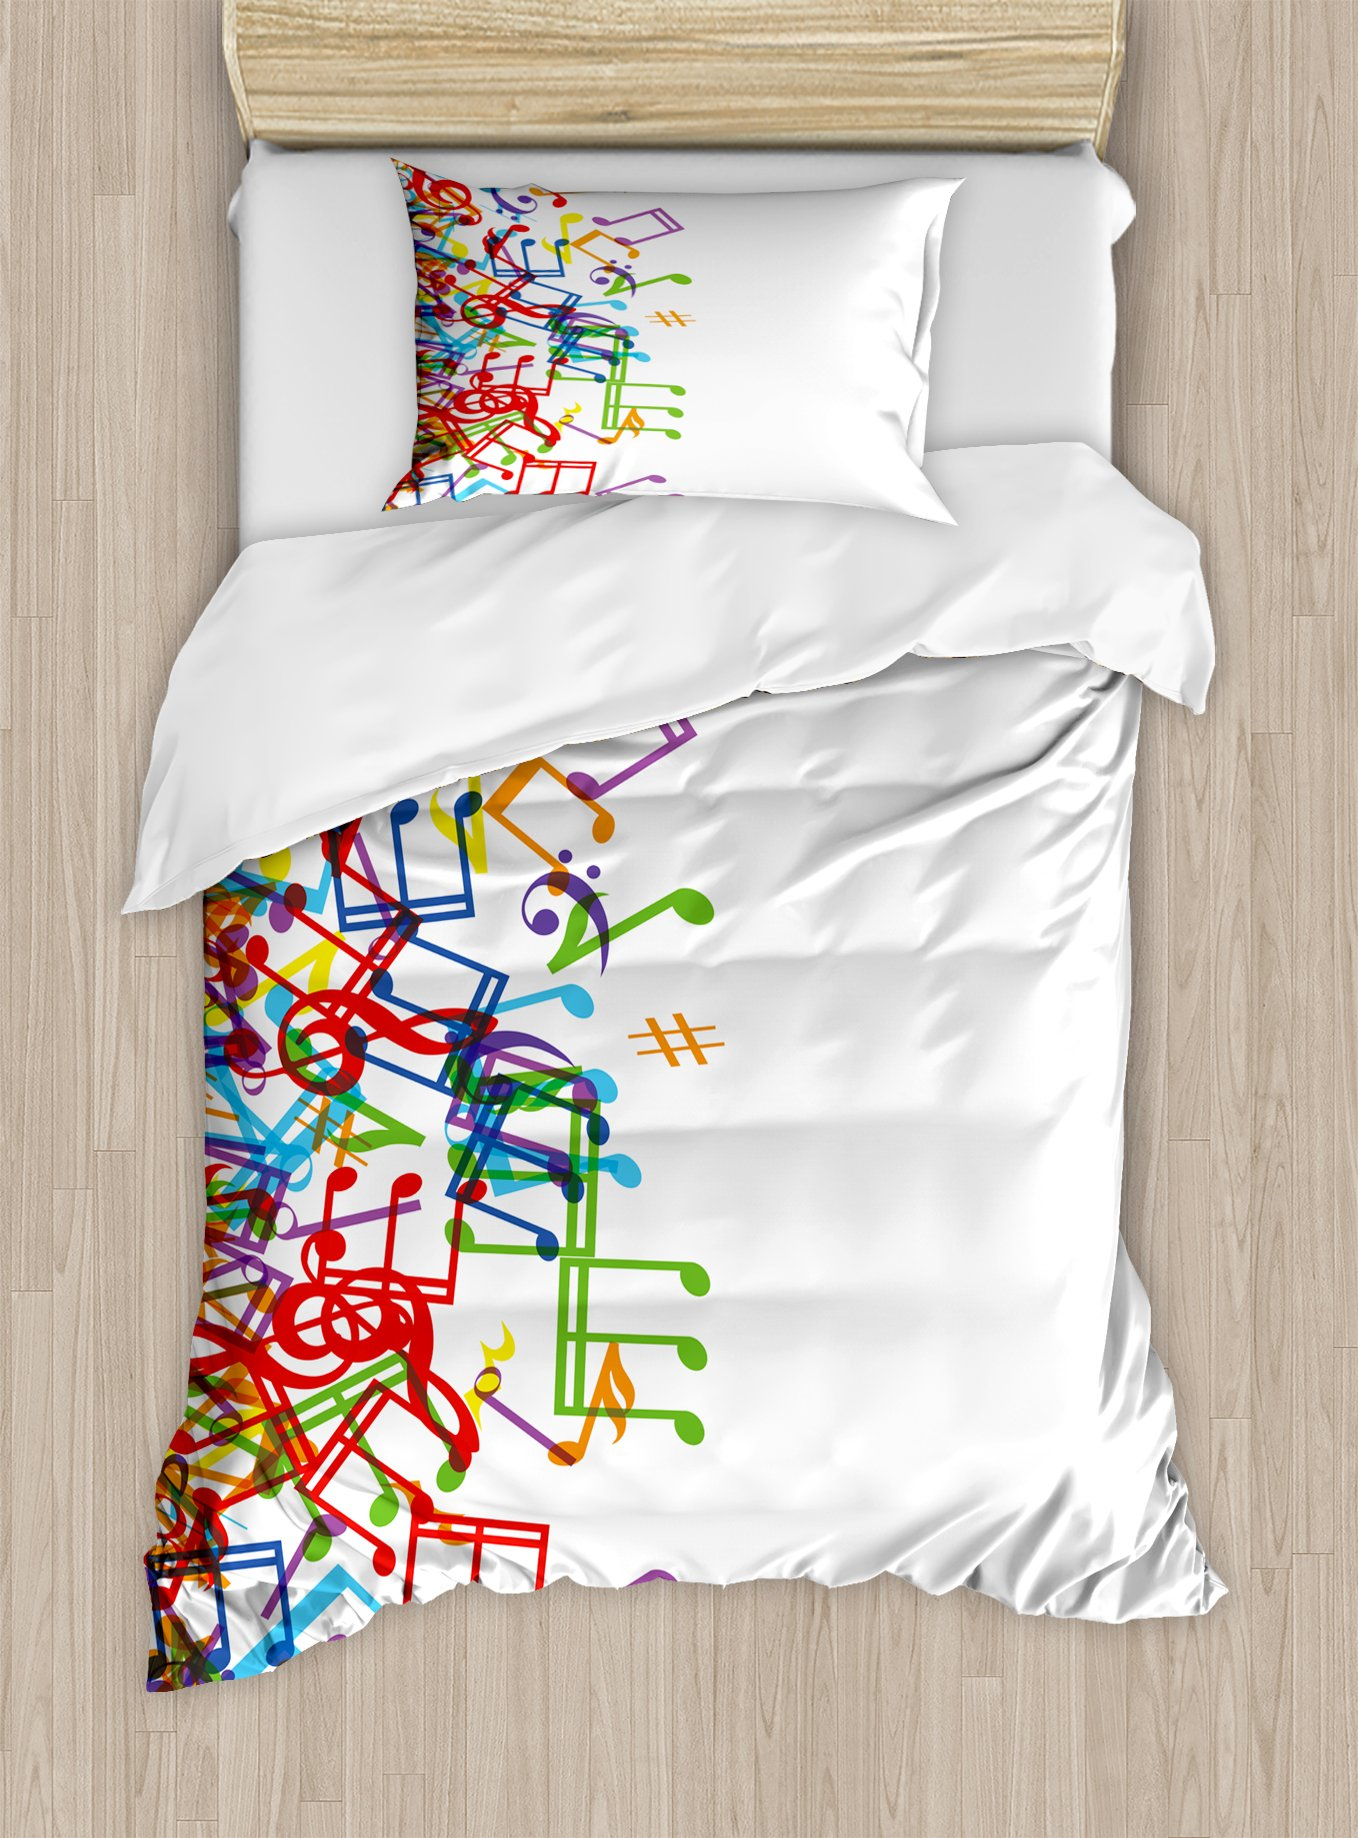 Ambesonne Colorful Duvet Cover Set Twin Size, Trippy Art Style Music Notes with Clef Rhythm Tempo Melody Harmony Print, Decorative 2 Piece Bedding Set with 1 Pillow Sham, Multicolor White